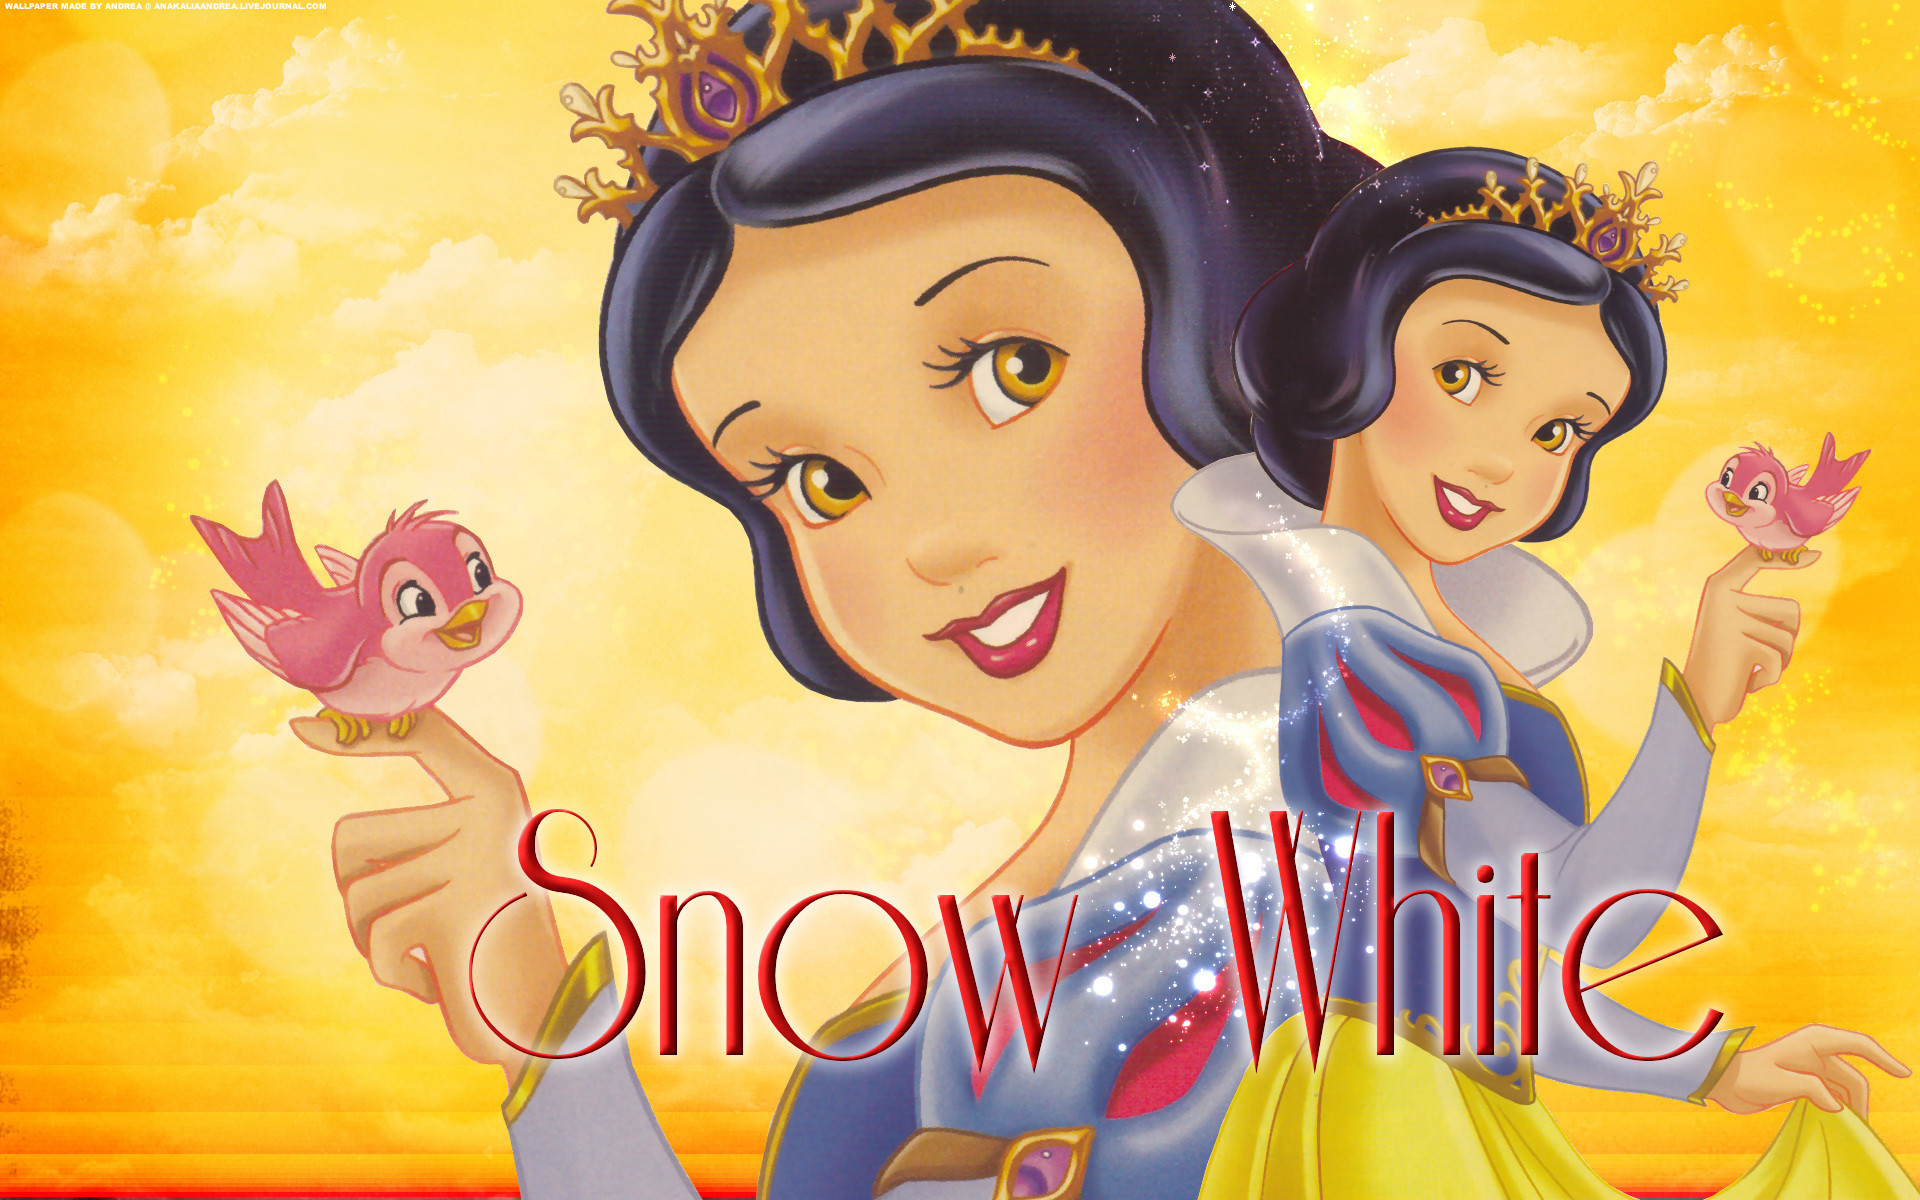 1920x1200 Disney Princesses images Princess Snow White - Wallpaper HD wallpaper and  background photos